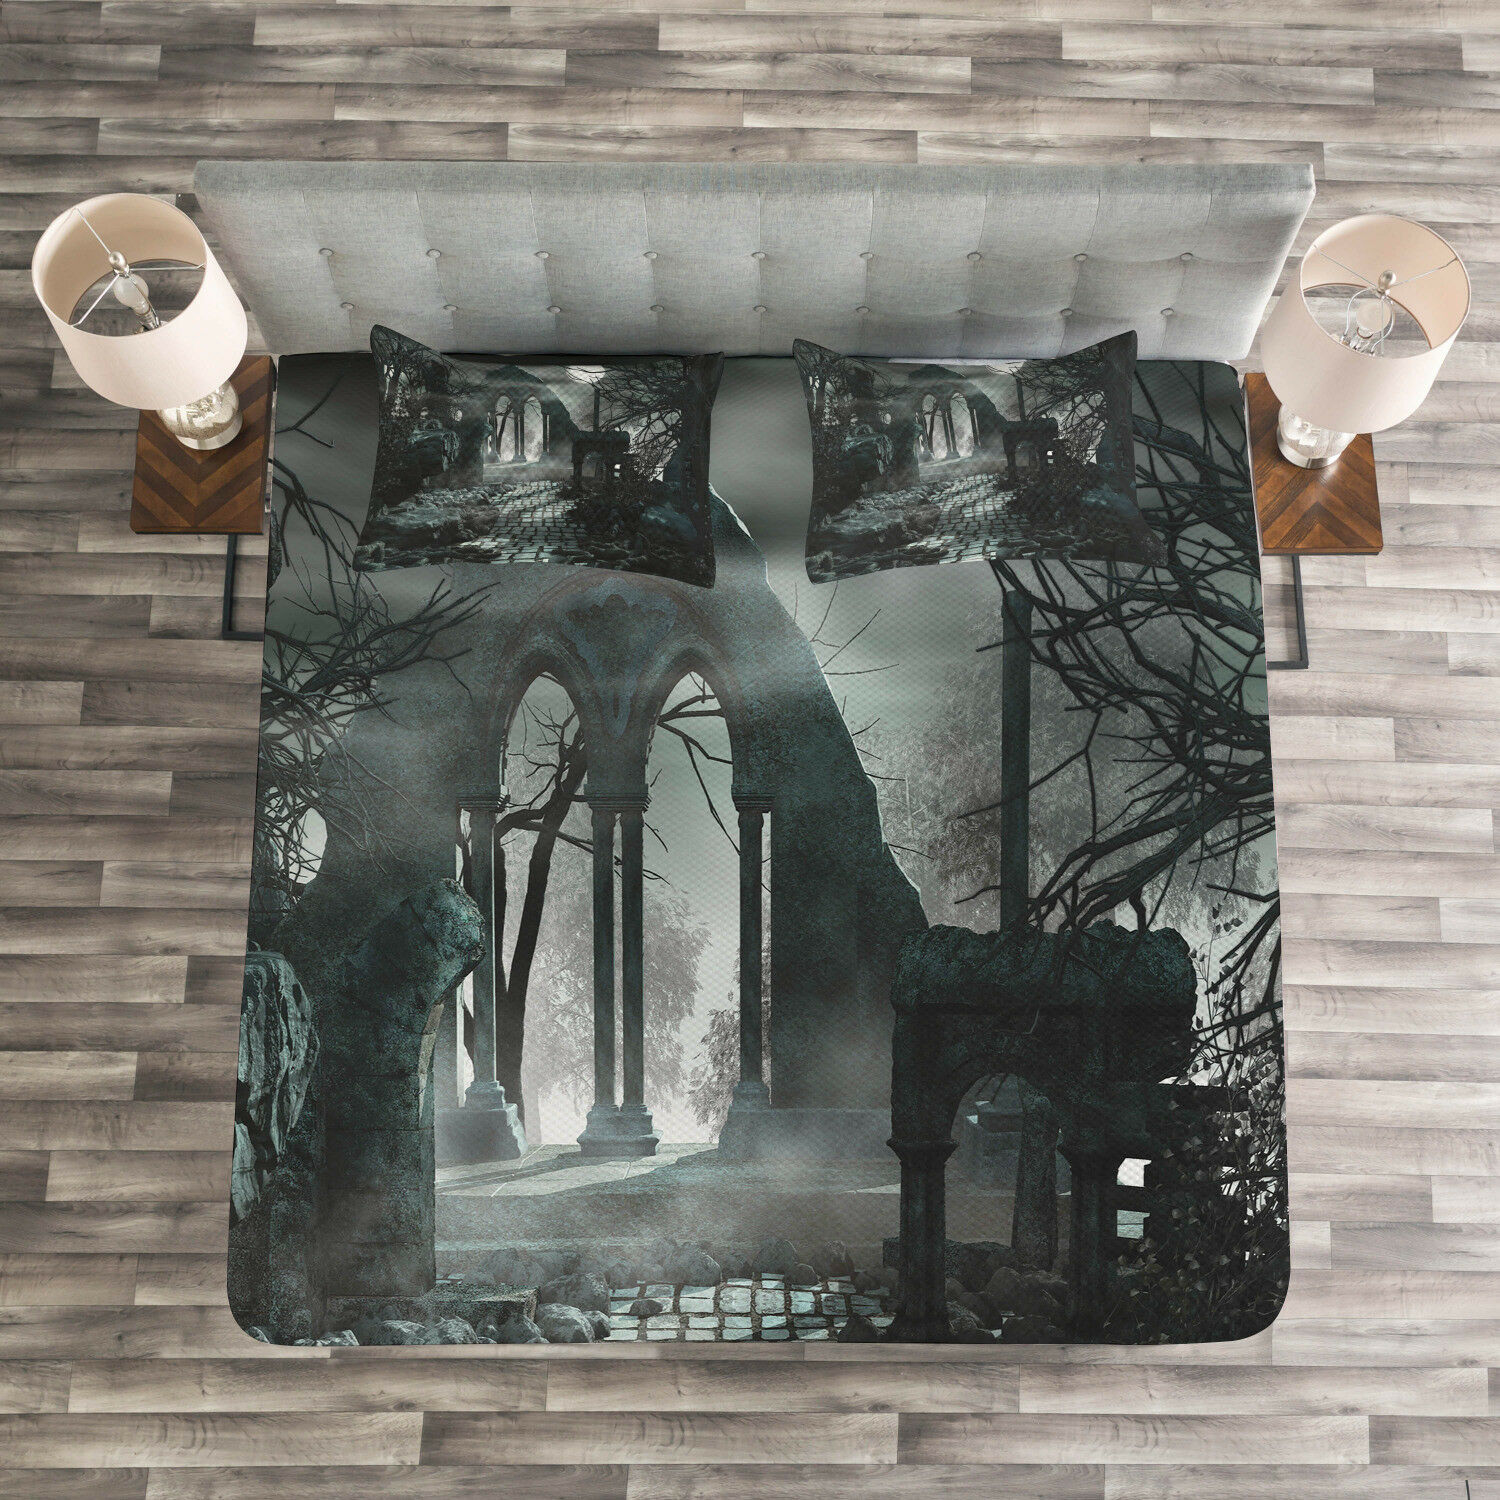 Gothic Quilted Bedspread & Pillow Shams Set, Moon View in Scary Dark Print